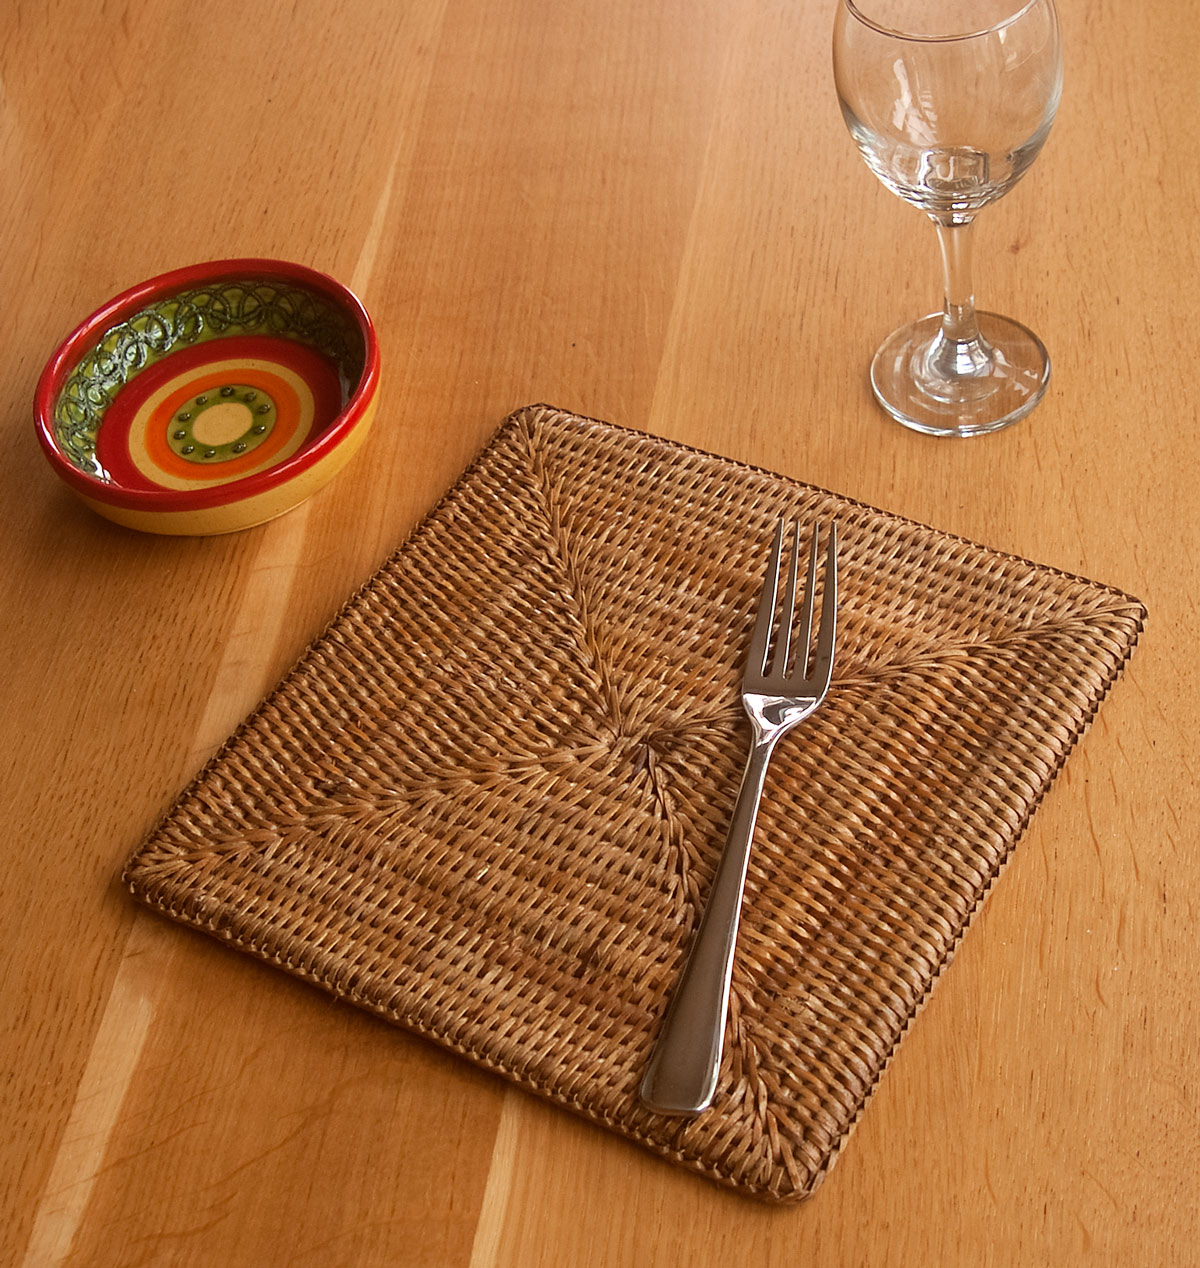 woven rattan placemat